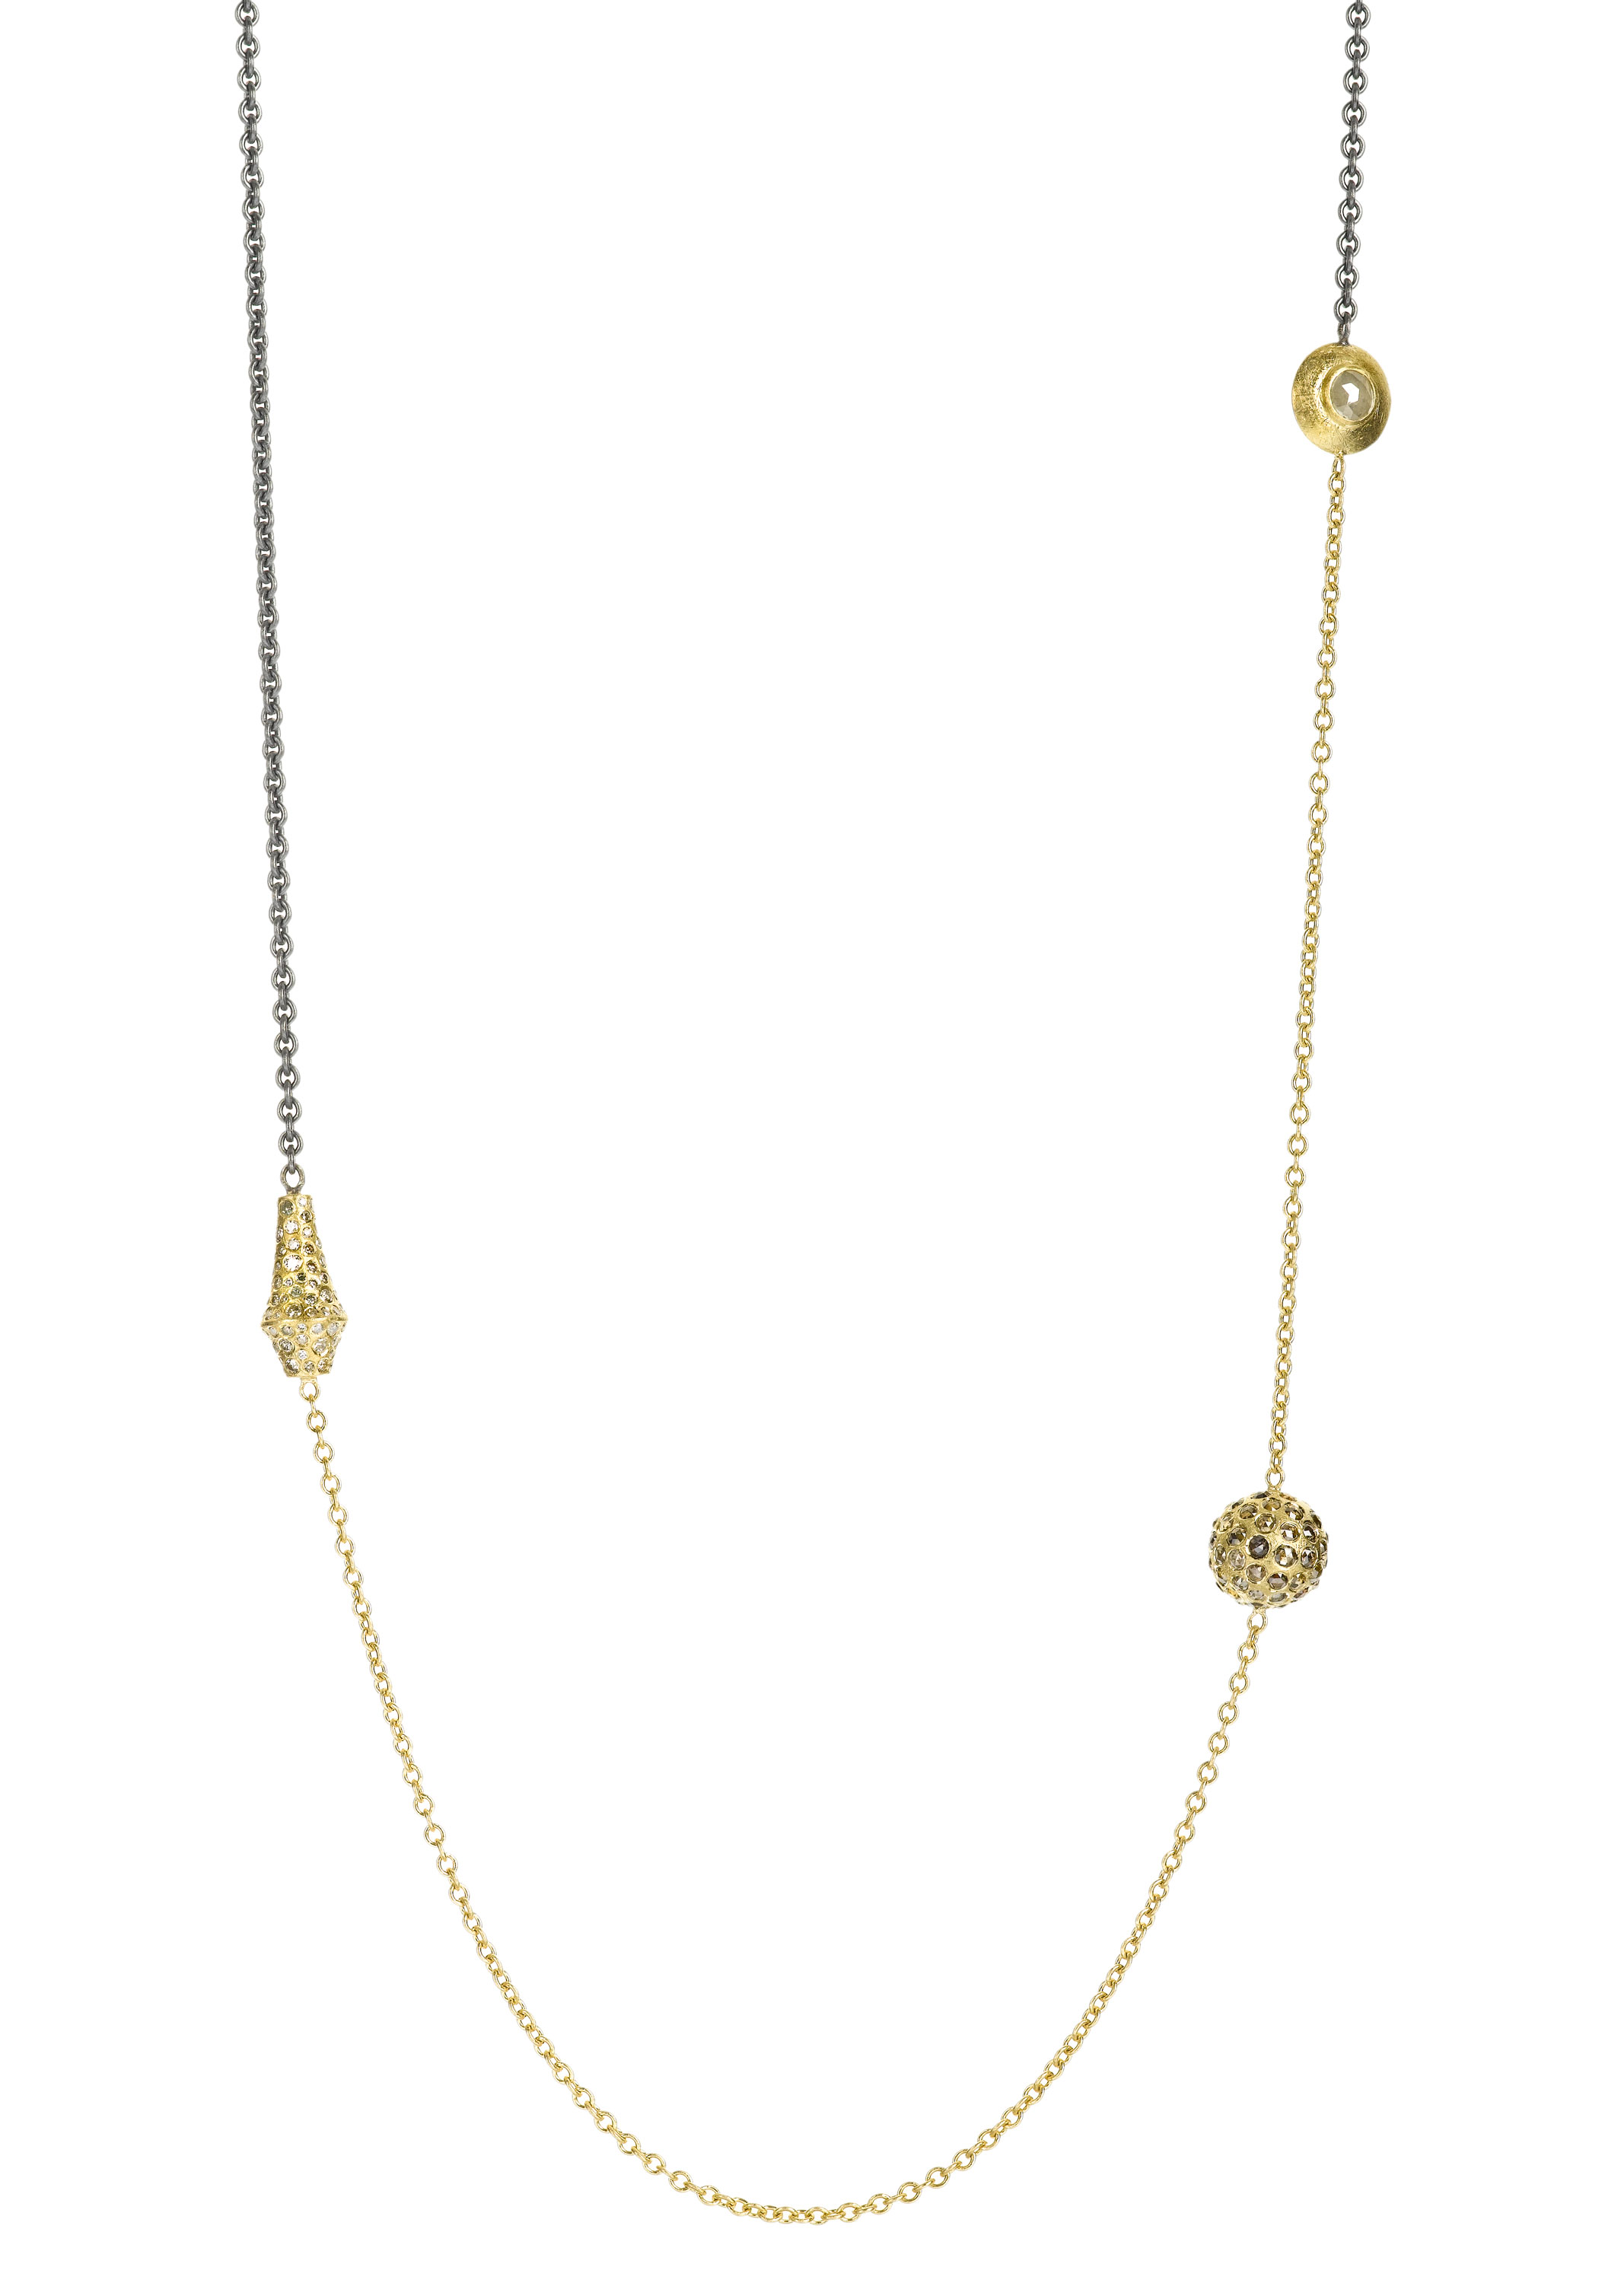 Todd Reed diamond layering necklace | JCK On Your Market